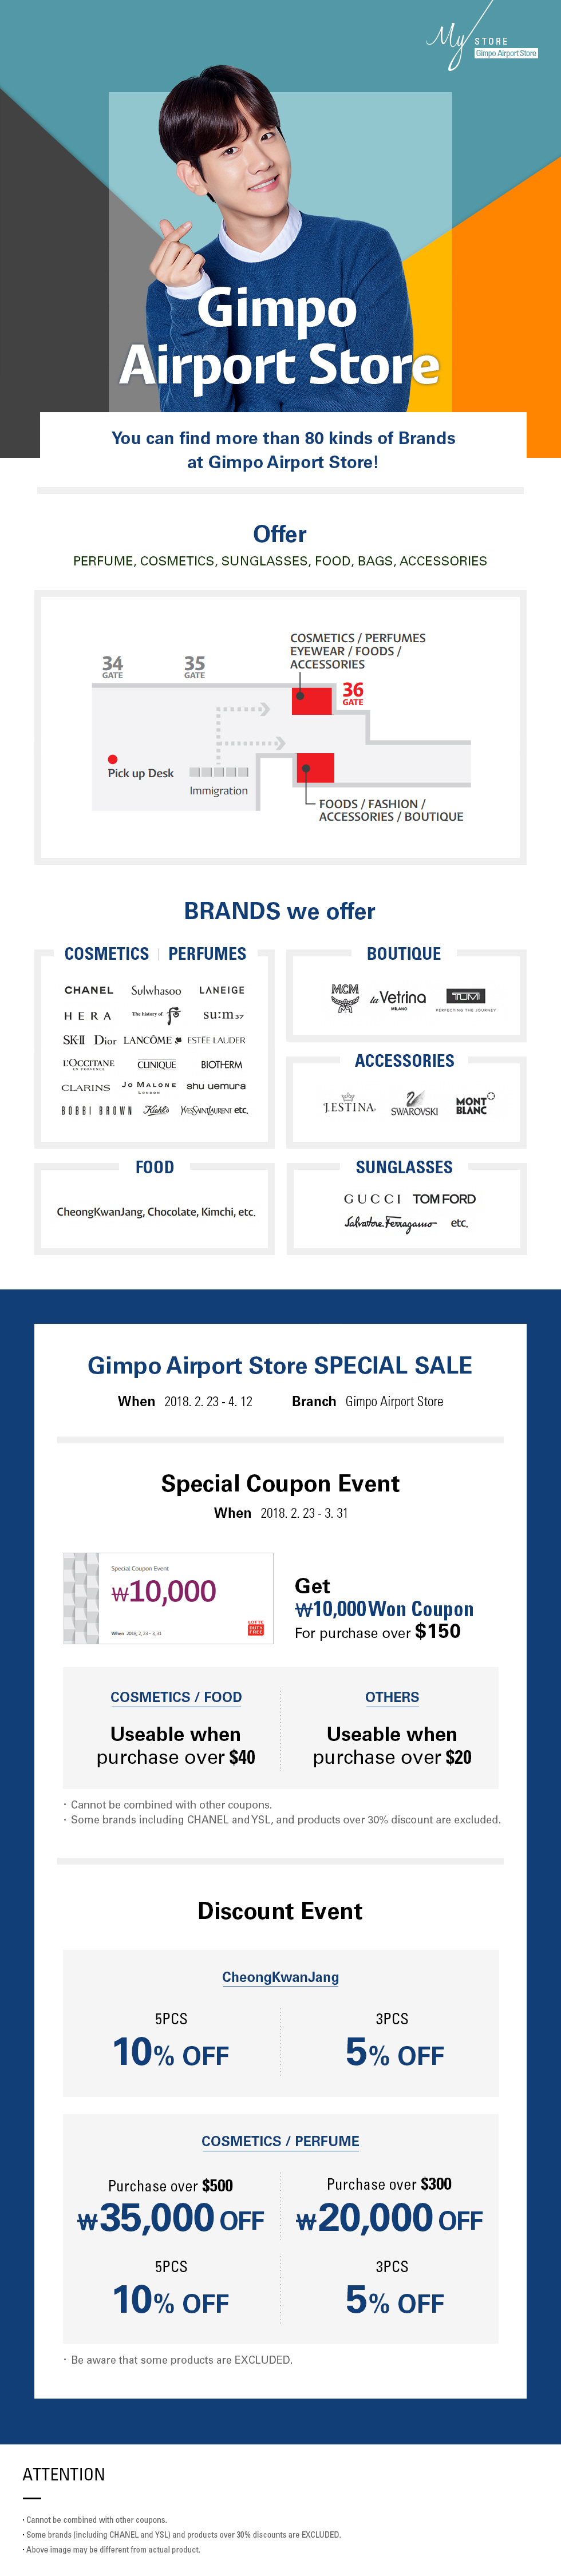 [Gimpo Airport Store] SPECIAL SALE